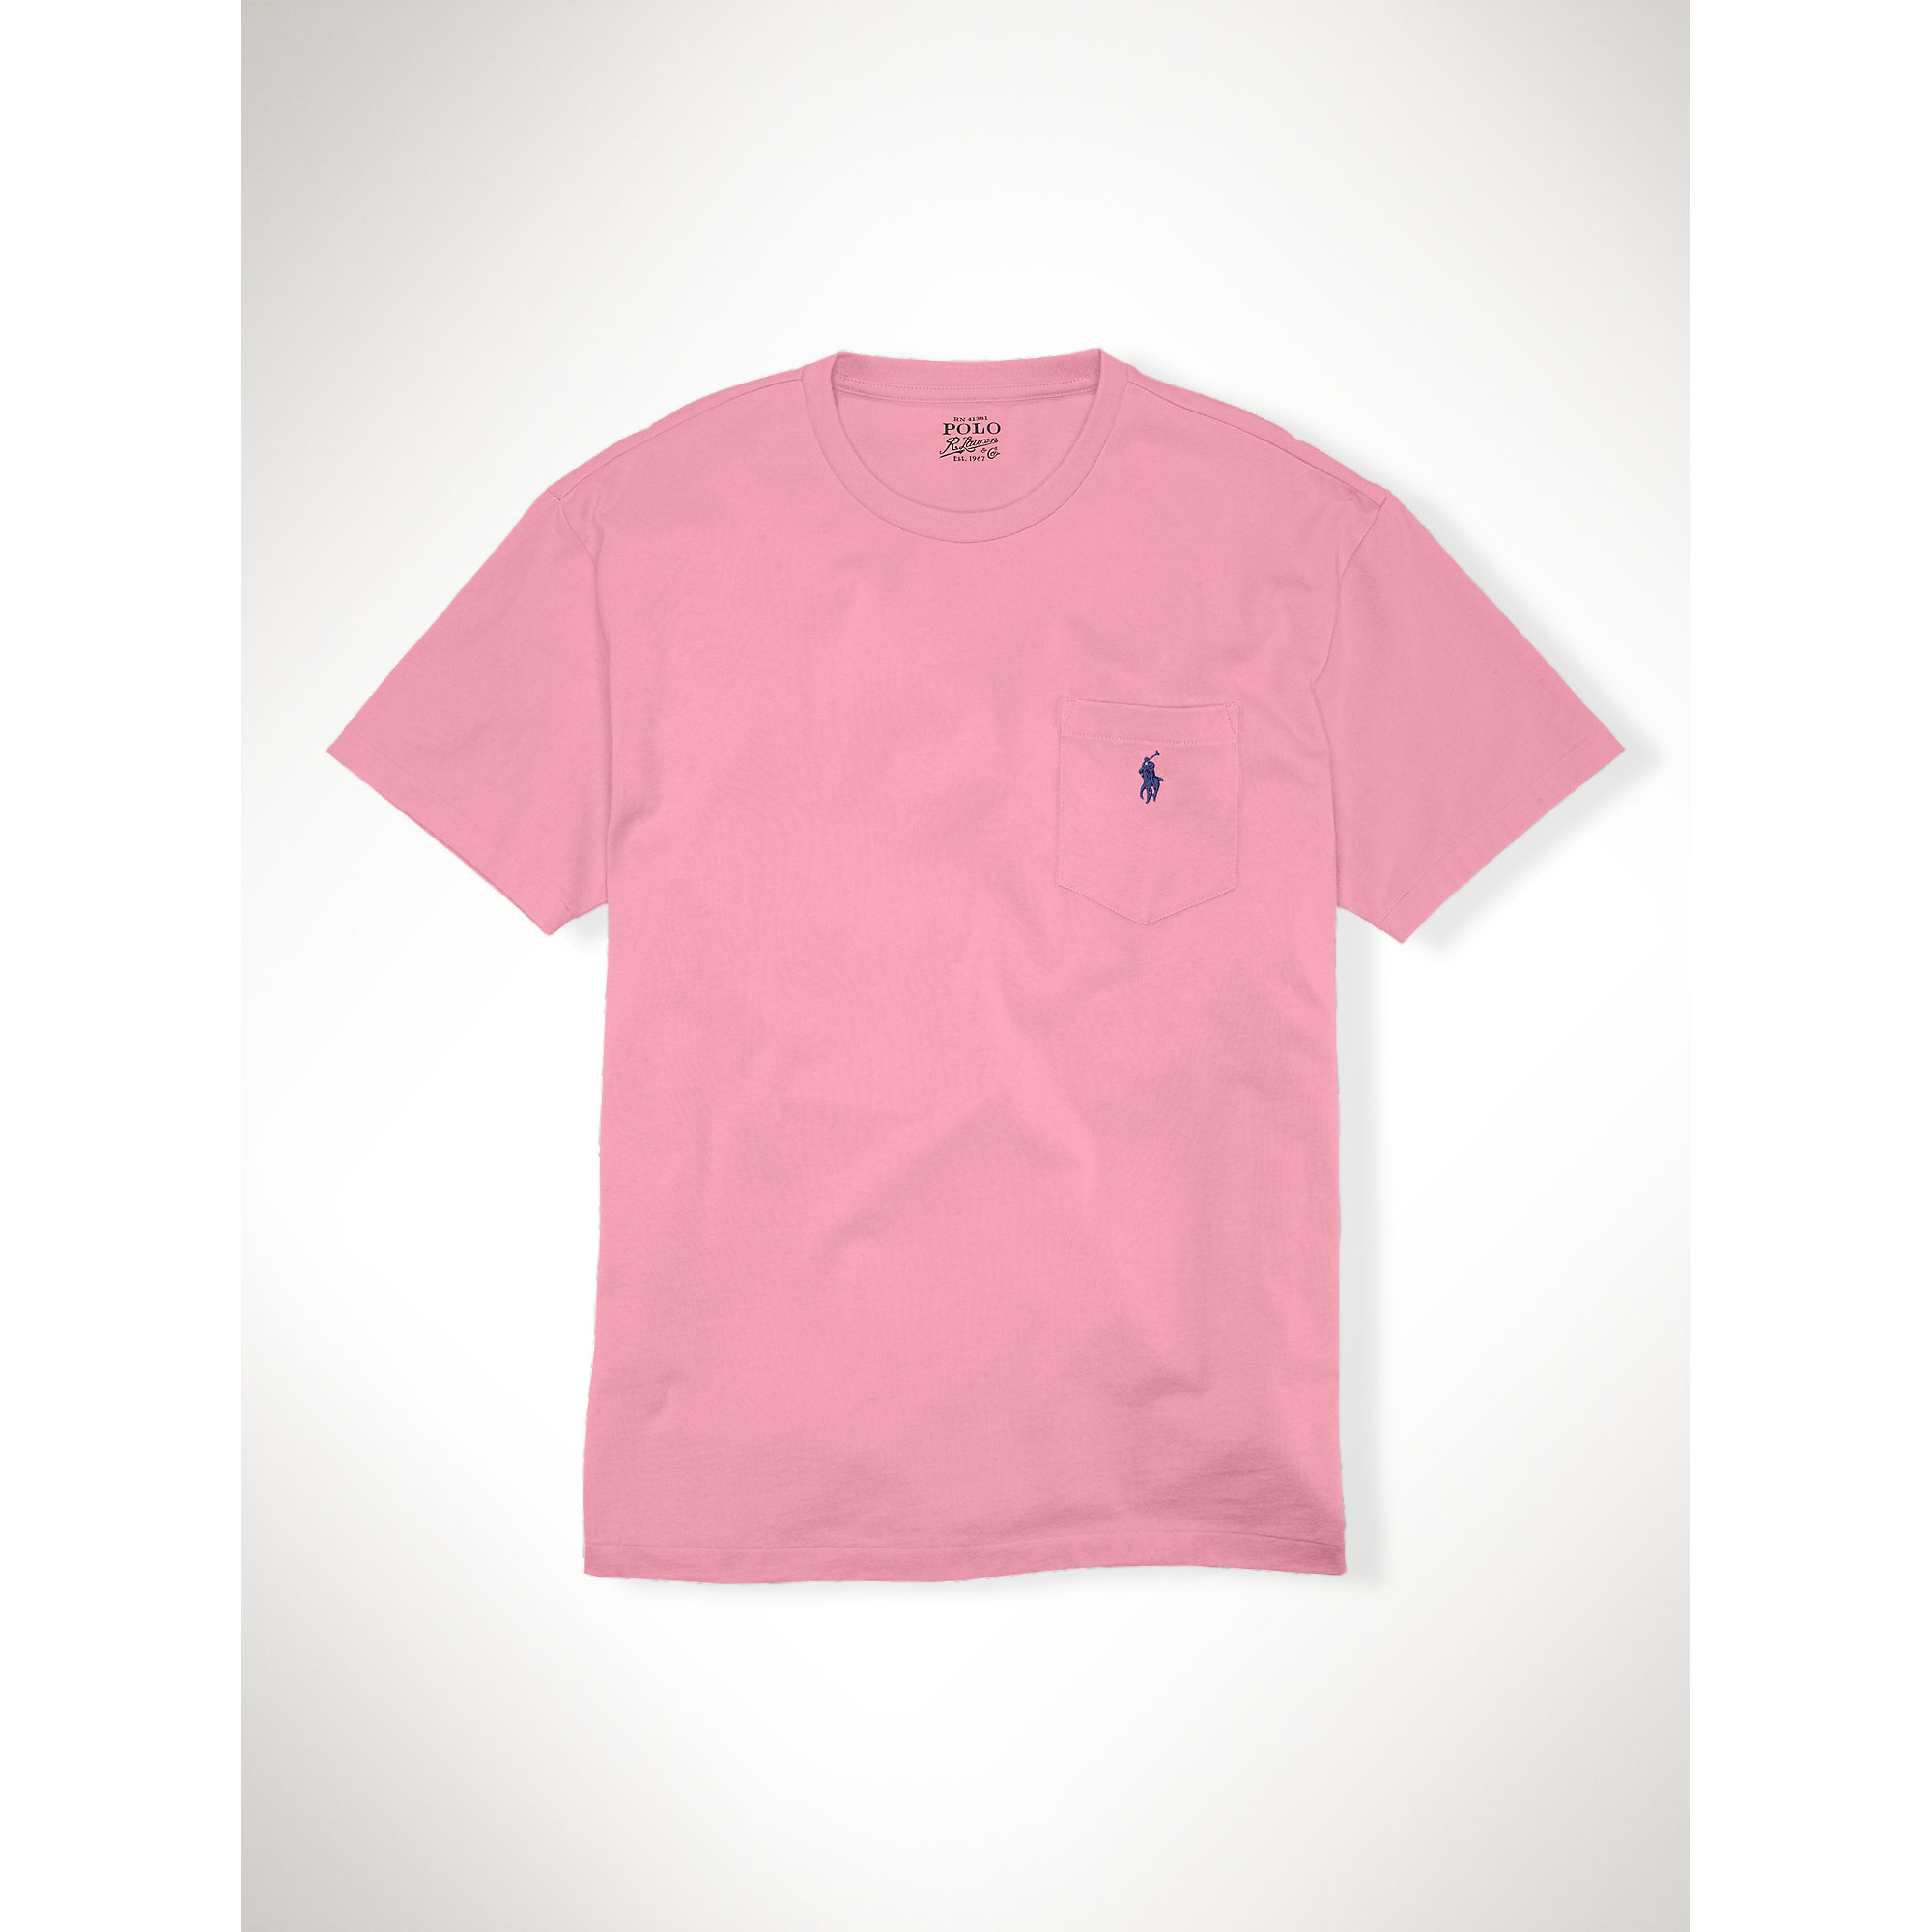 polo ralph lauren classic fit pocket t shirt in pink for. Black Bedroom Furniture Sets. Home Design Ideas